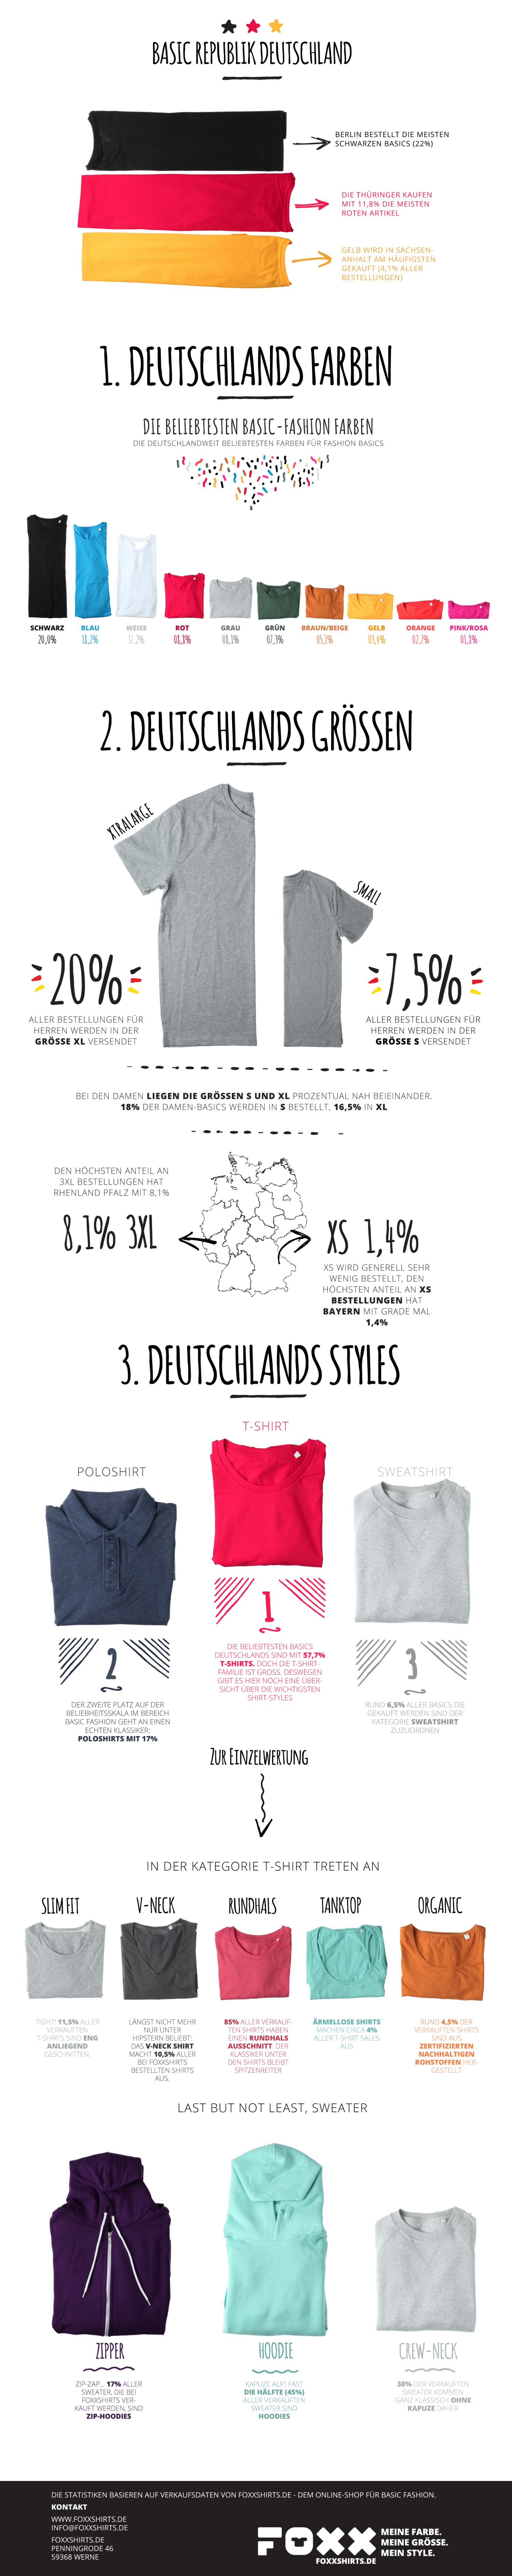 Basic Fashion in Germany Infographic